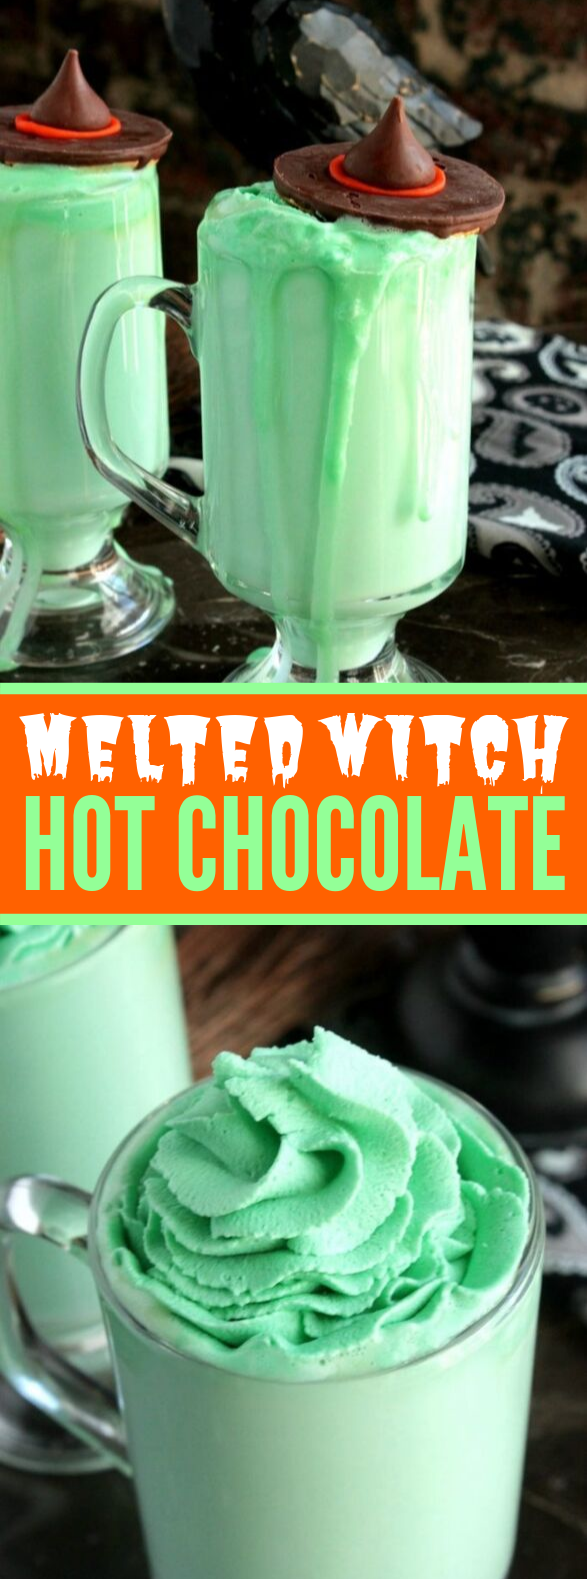 MELTING WITCH HOT CHOCOLATE #drinks #halloween